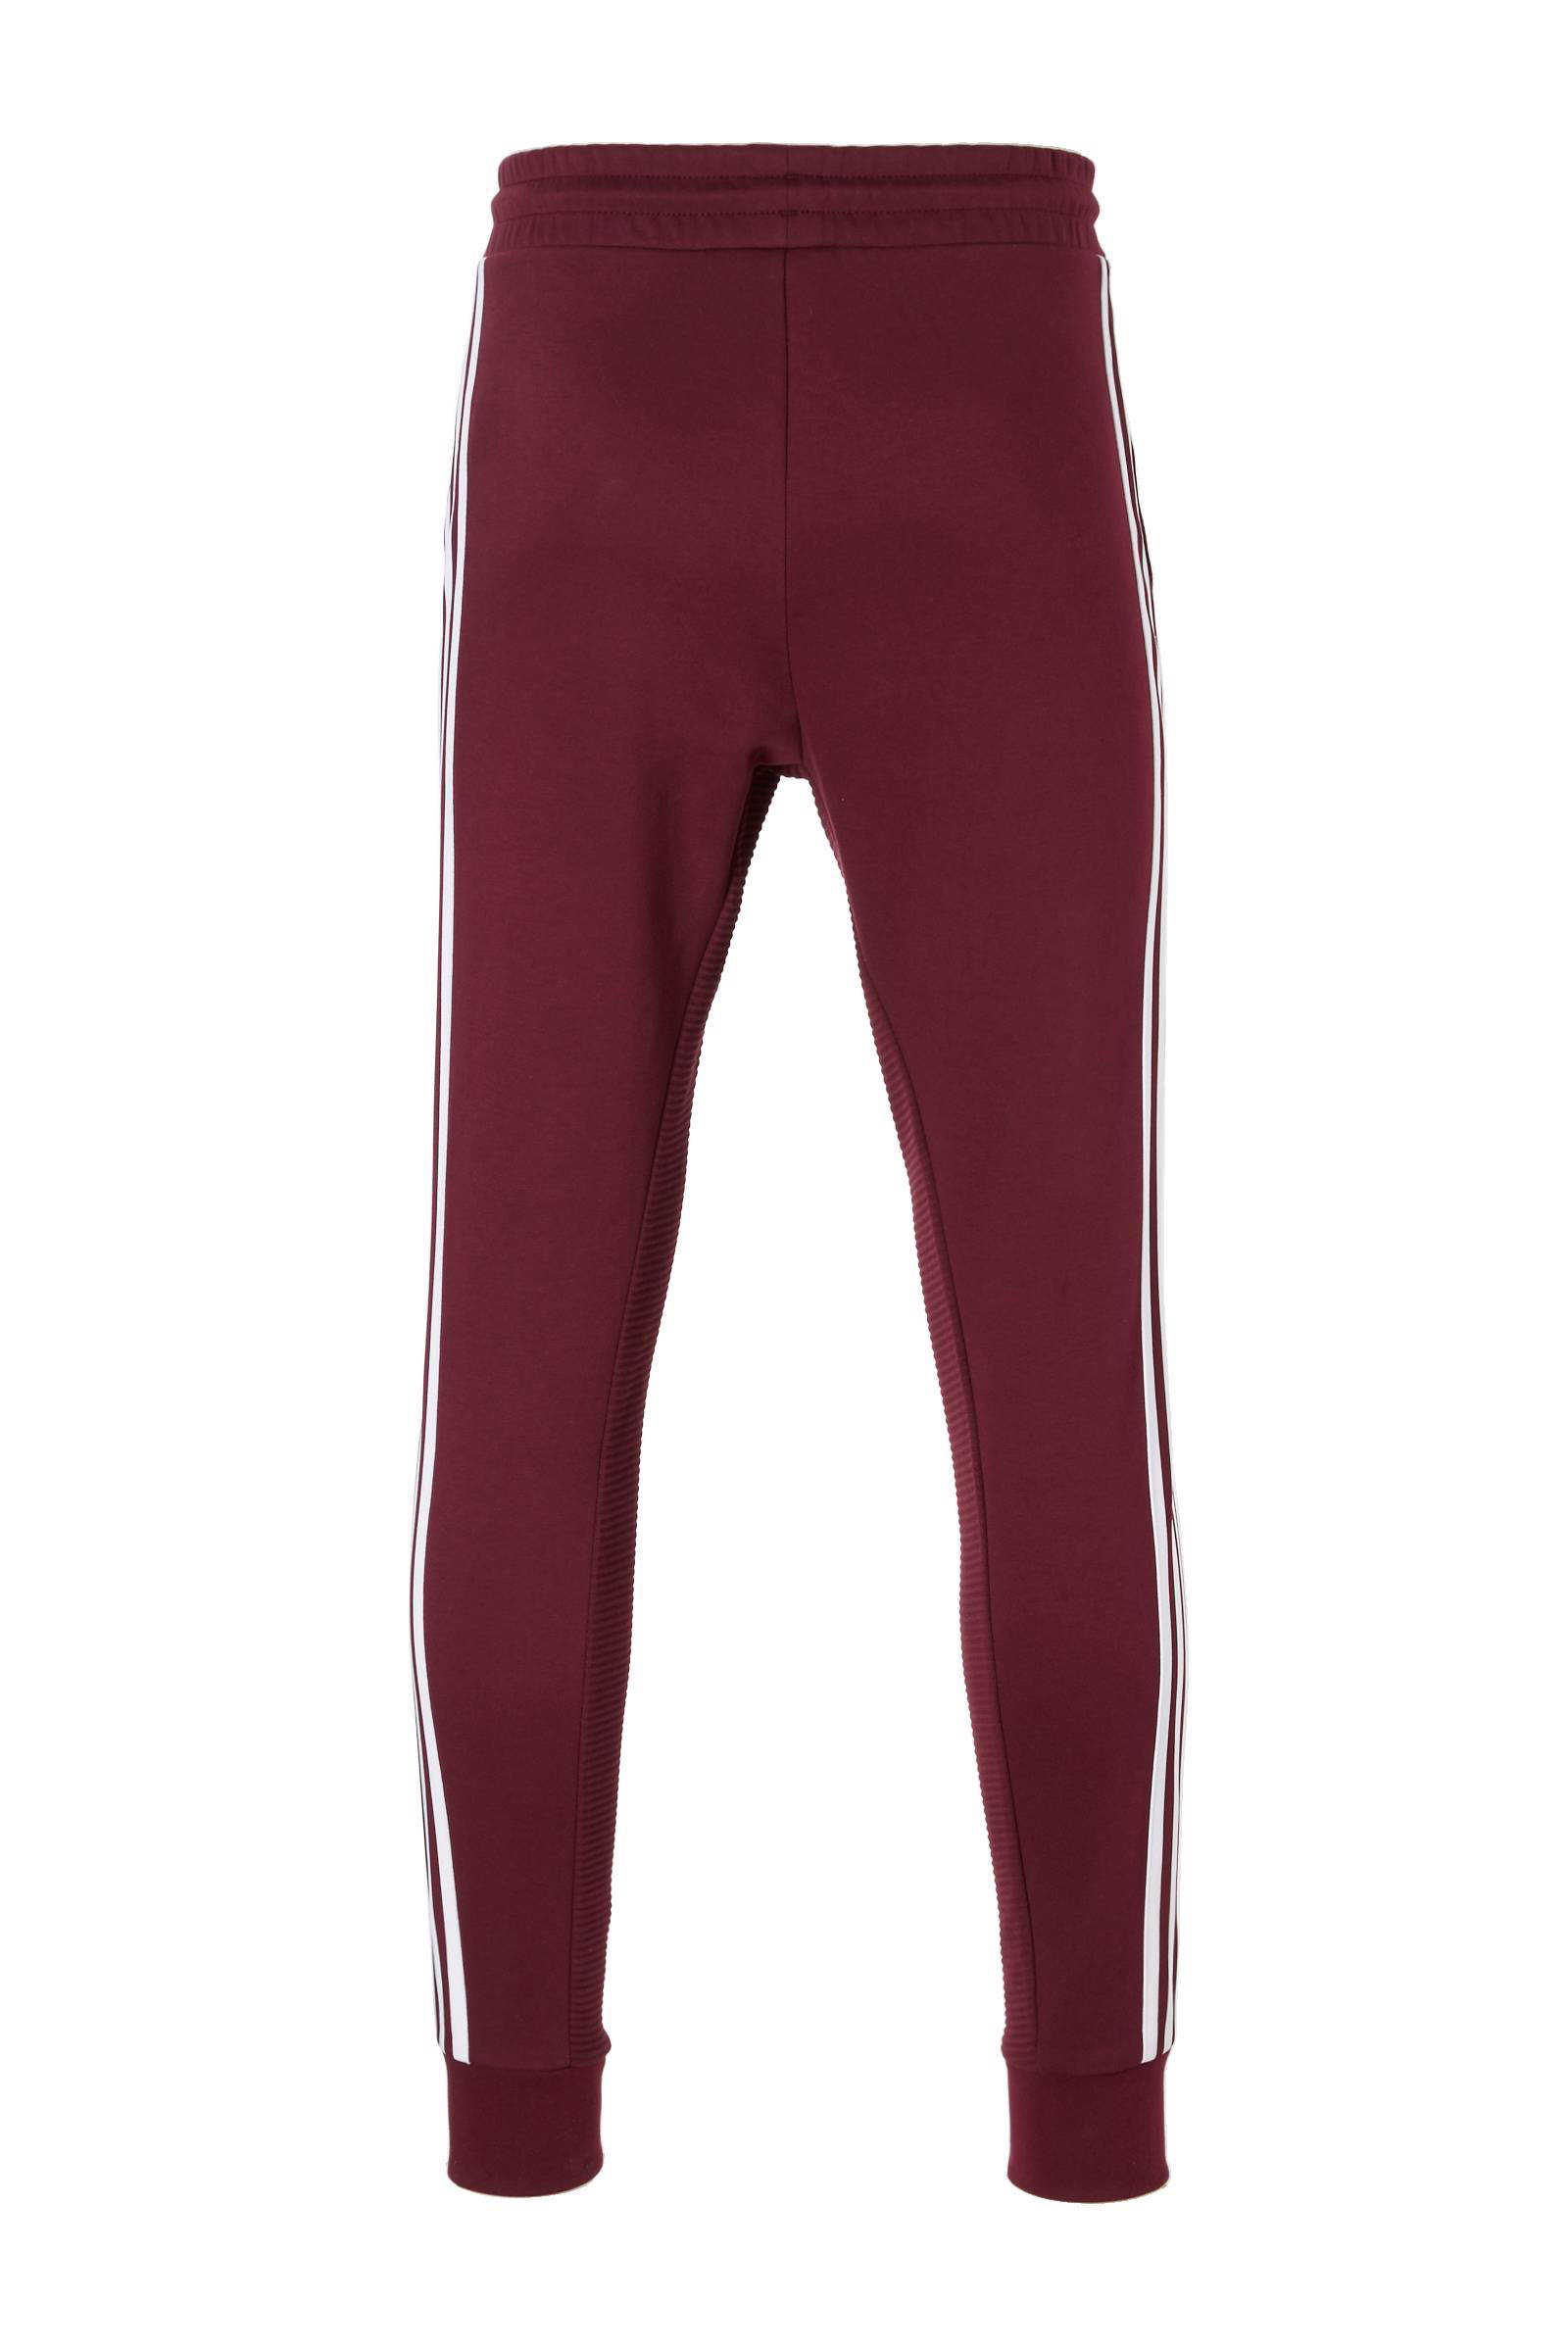 adidas originals adidas Originals joggingbroek | wehkamp